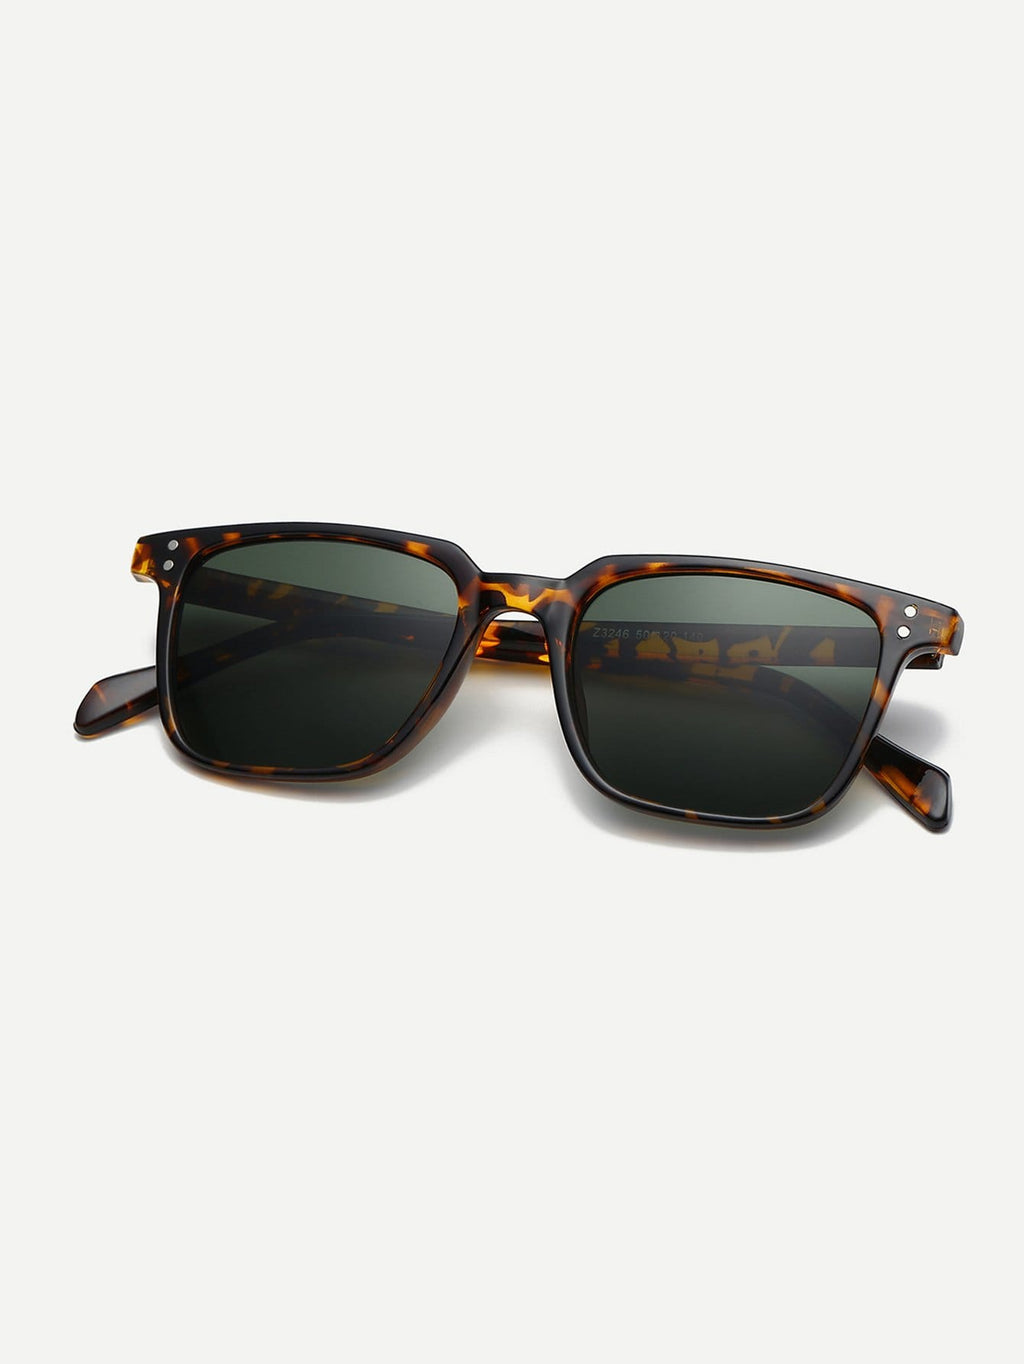 Men's Sunglasses - Leopard Pattern Frame Sunglasses